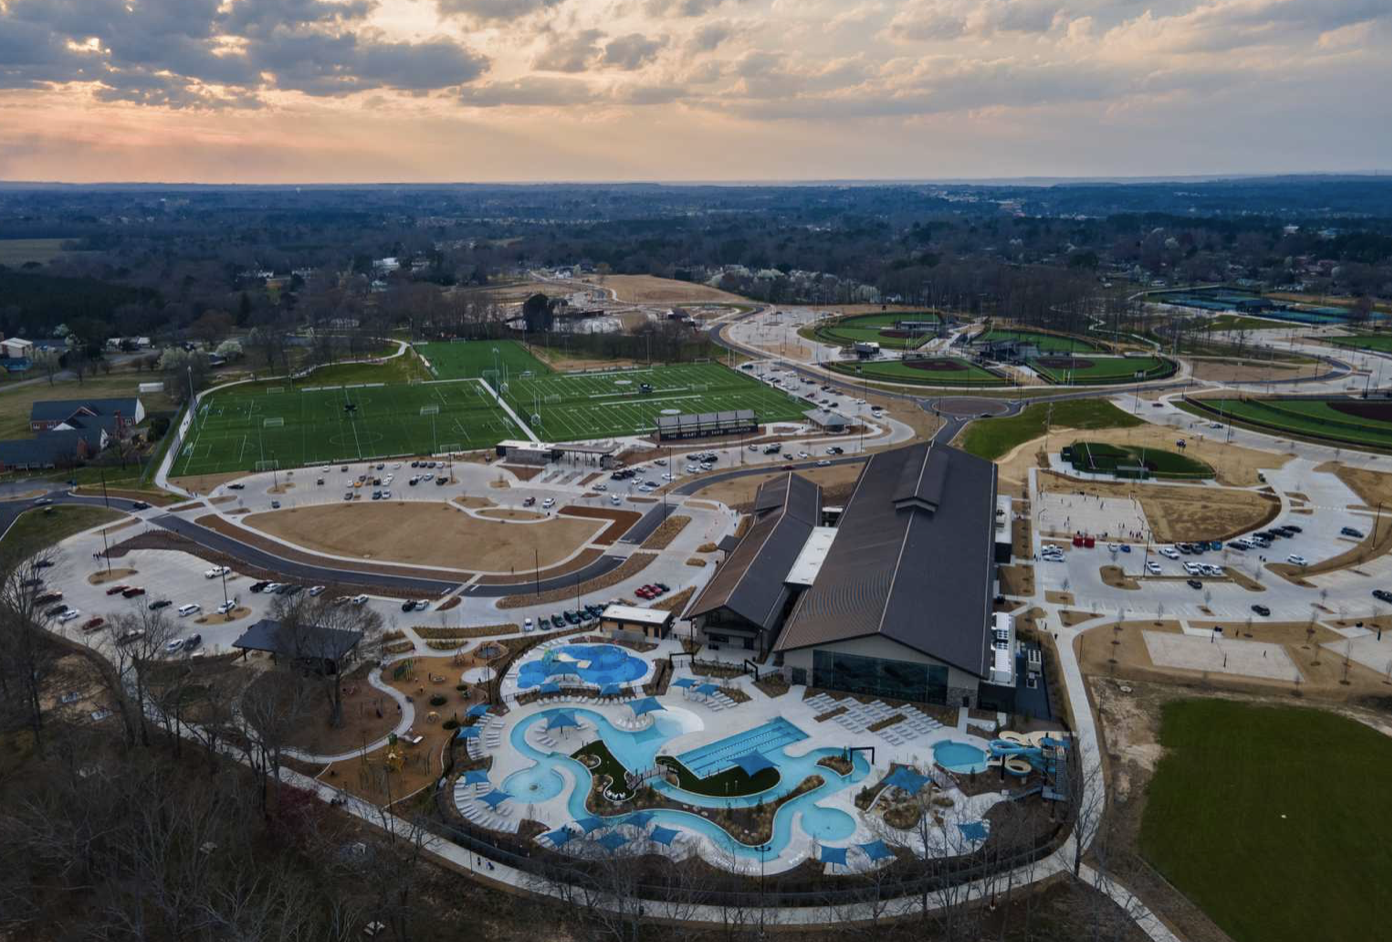 Sand Mountain Park campground from aerial view with pools.